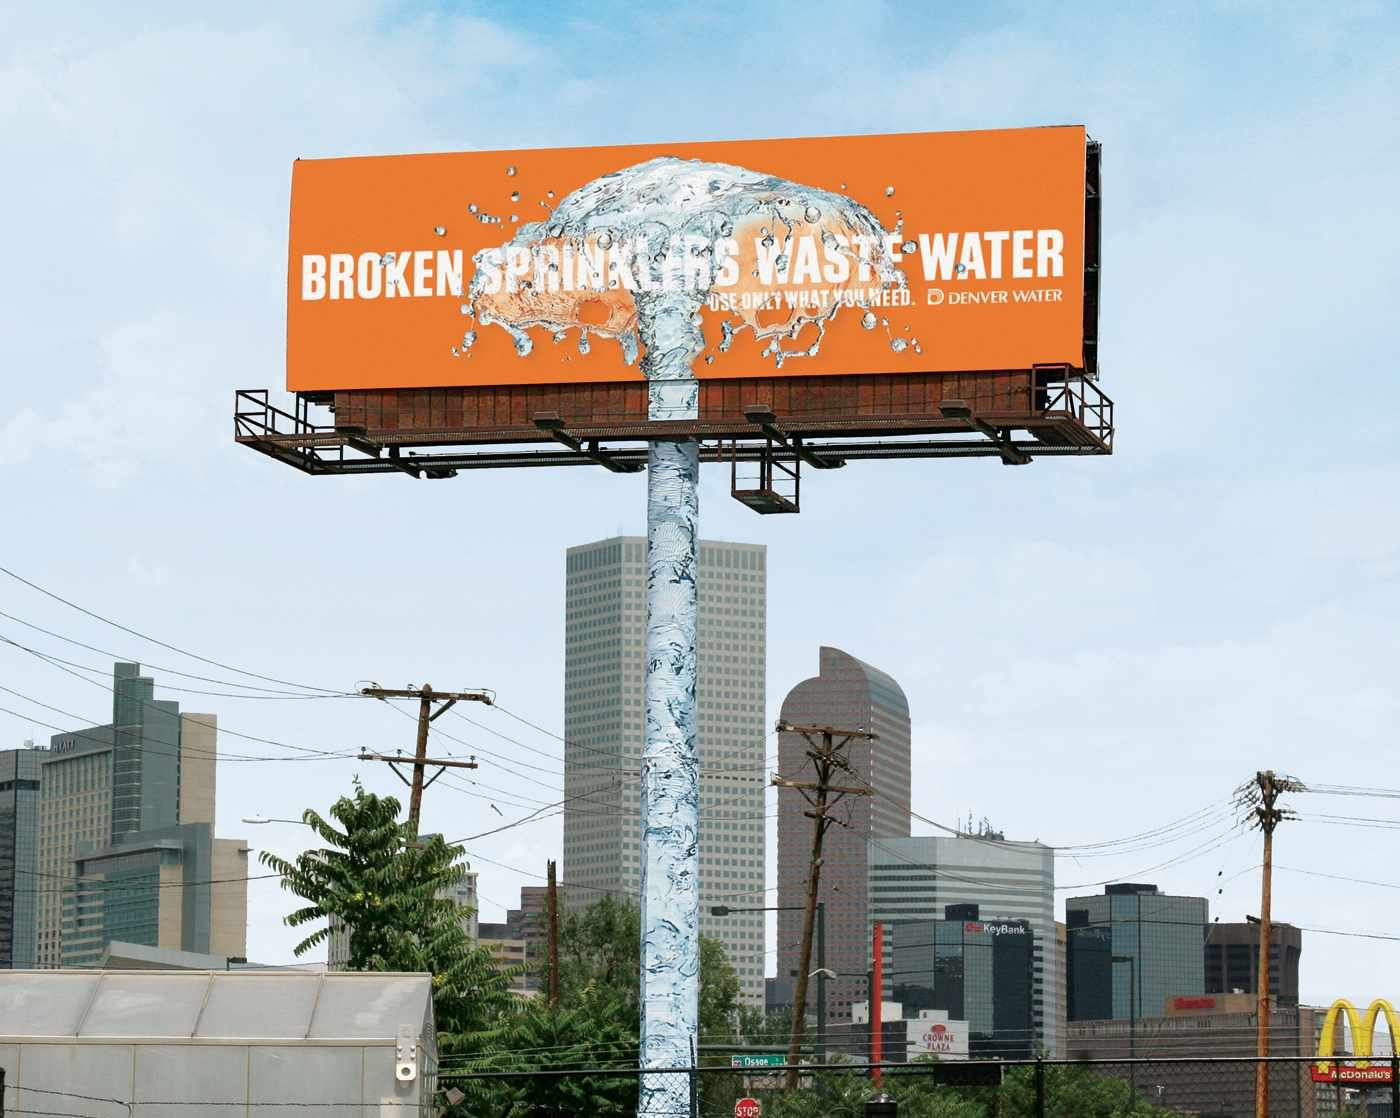 Outdoor Advertising Ideas Part - 49: Denver Water: Sprinkler #cartellonistica #pubblicitàesterna #installazioni  #pubblicità #outdooradvertising #advertising